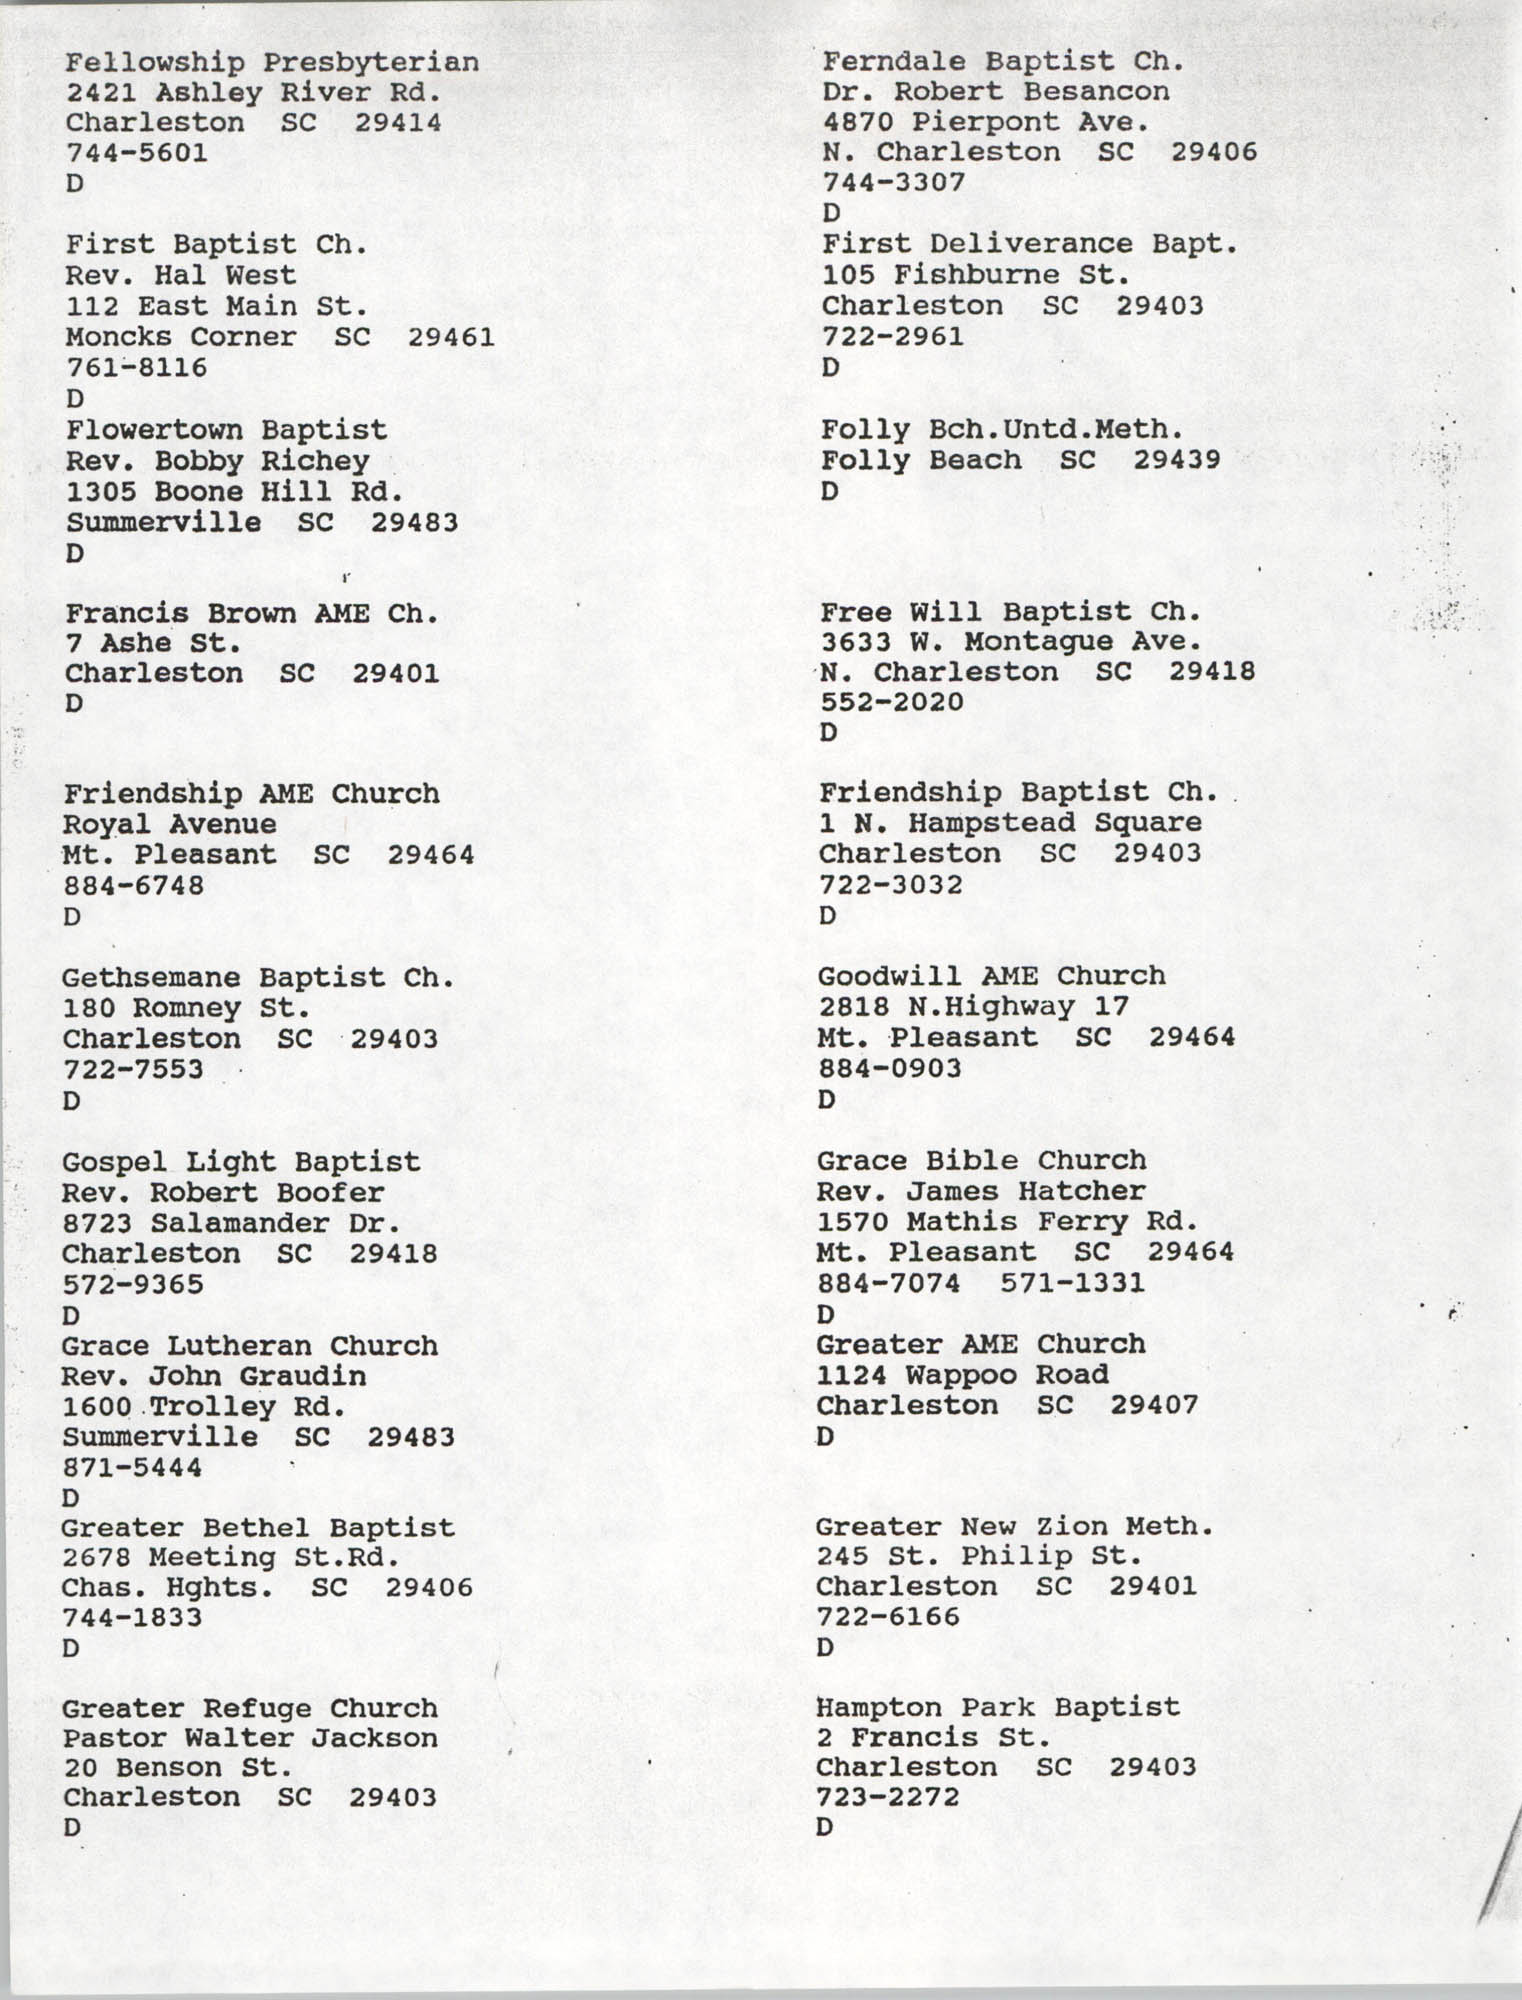 Church Contact List, Charleston Chapter of the NAACP, Page 20